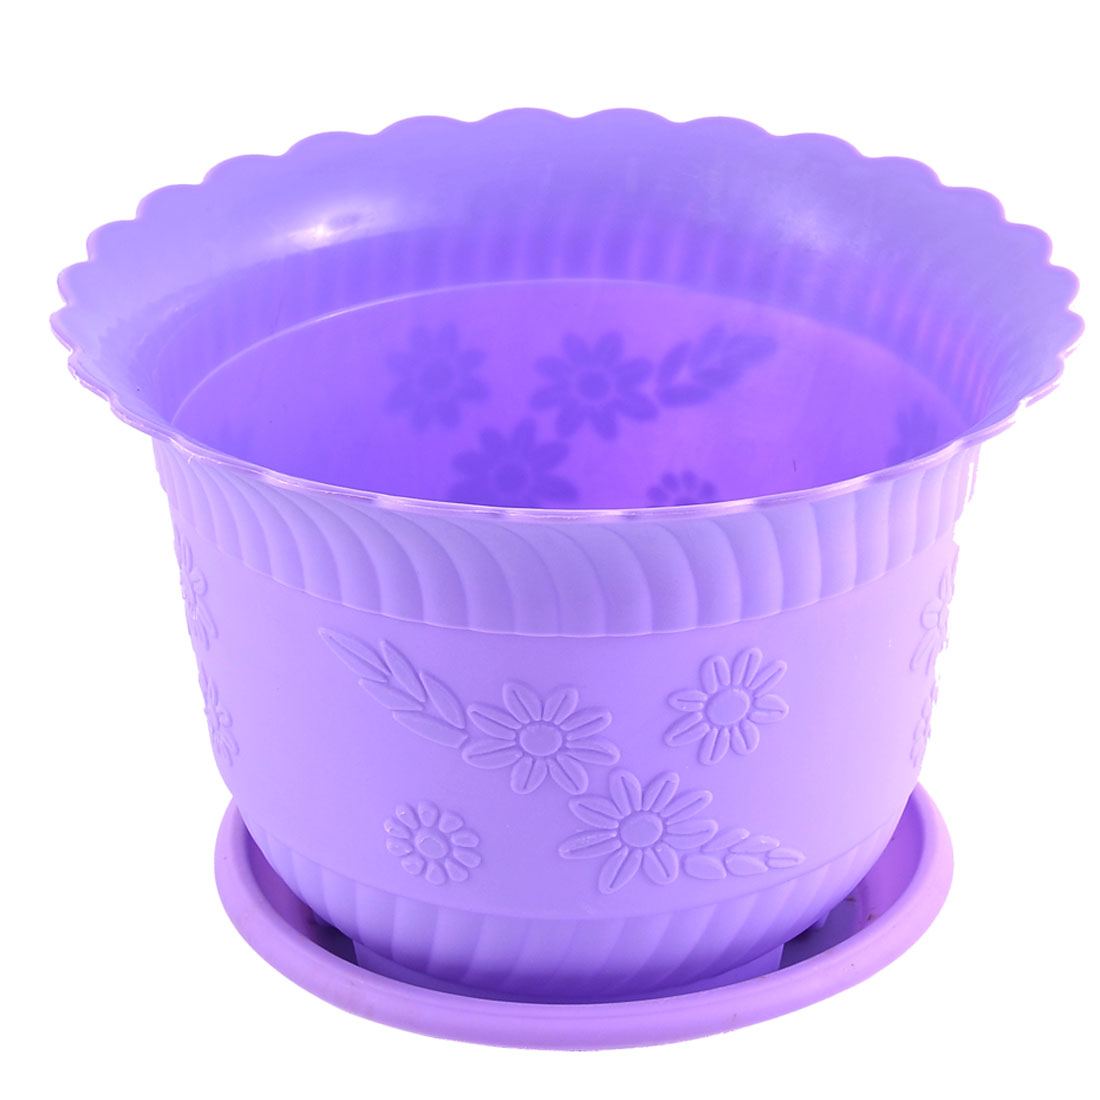 Home Office Garden Plastic Floral Pattern Cactus Aloe Plant Flower Pot Purple w Tray